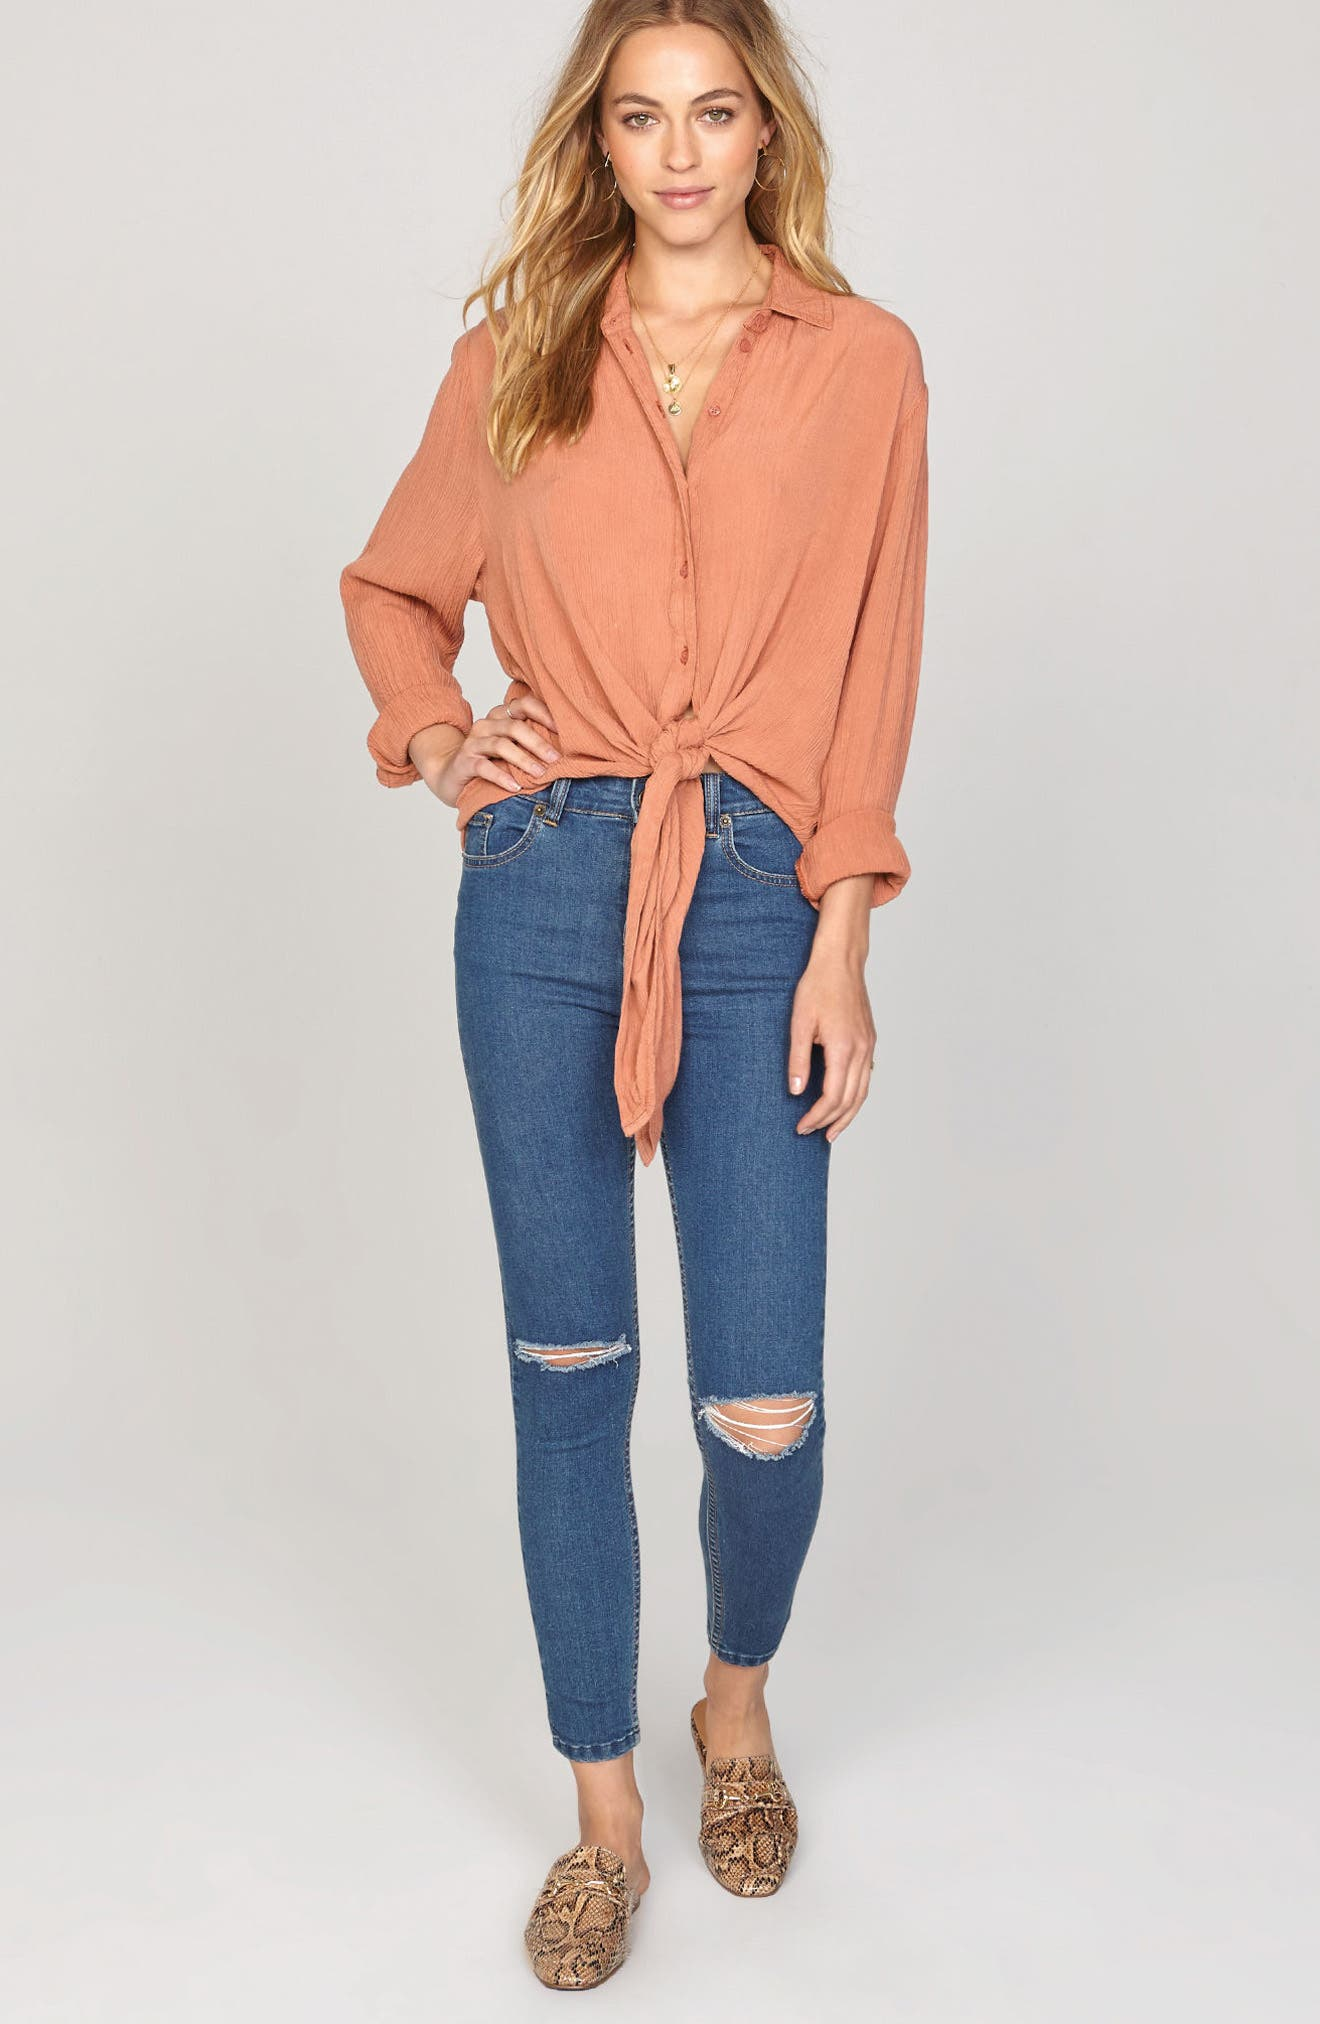 C'est La Vie Knotted Shirt,                             Alternate thumbnail 2, color,                             Rose Dawn